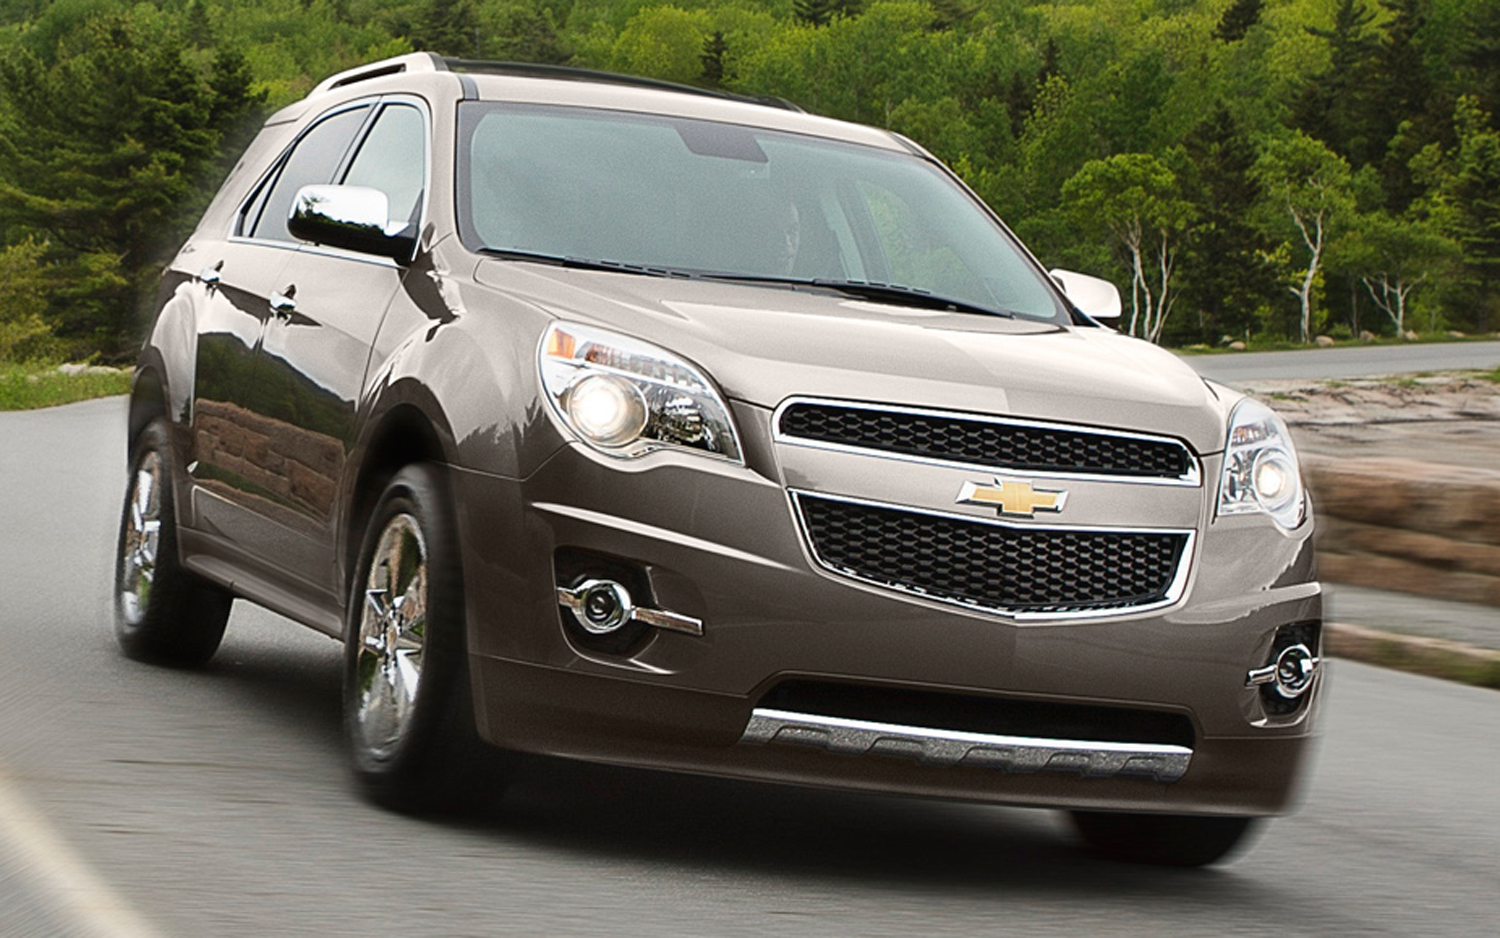 Chevrolet equinox 2014 photo - 6